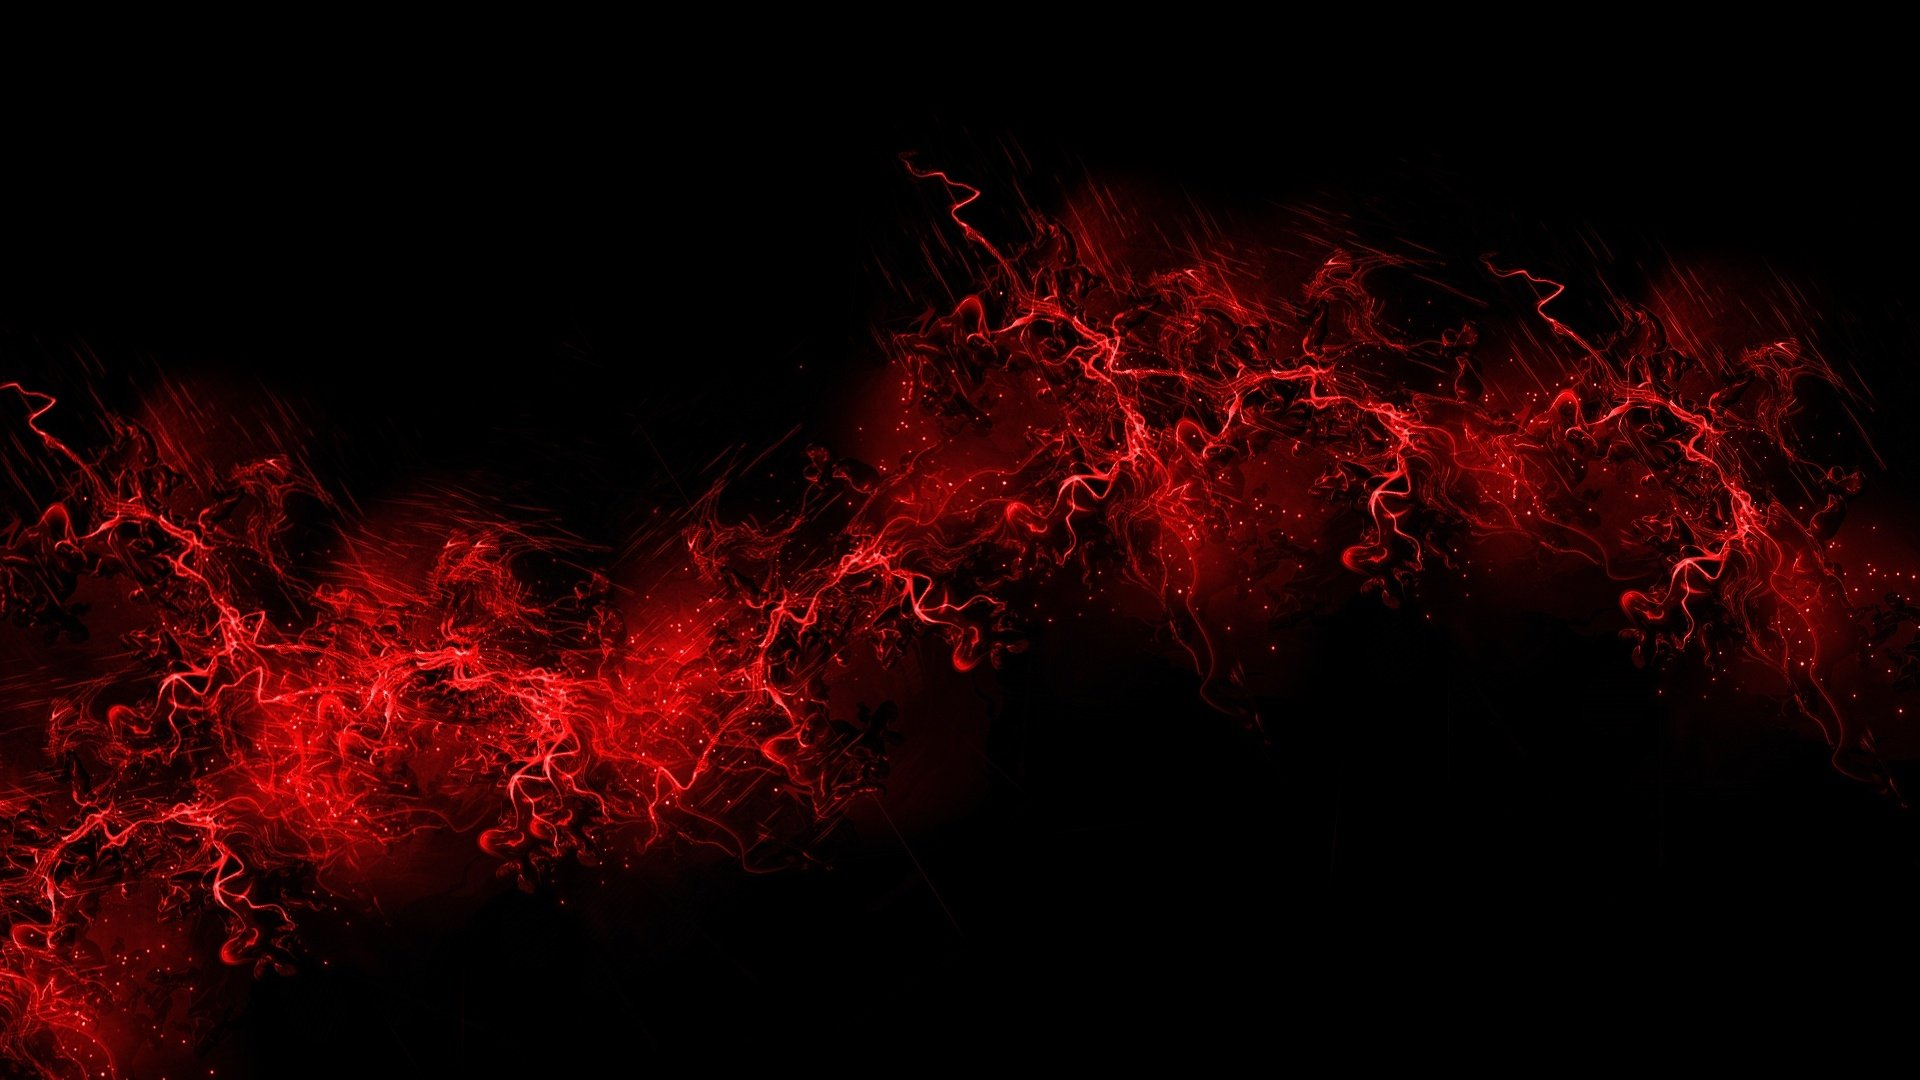 dark abstract wallpaper 1920x1080